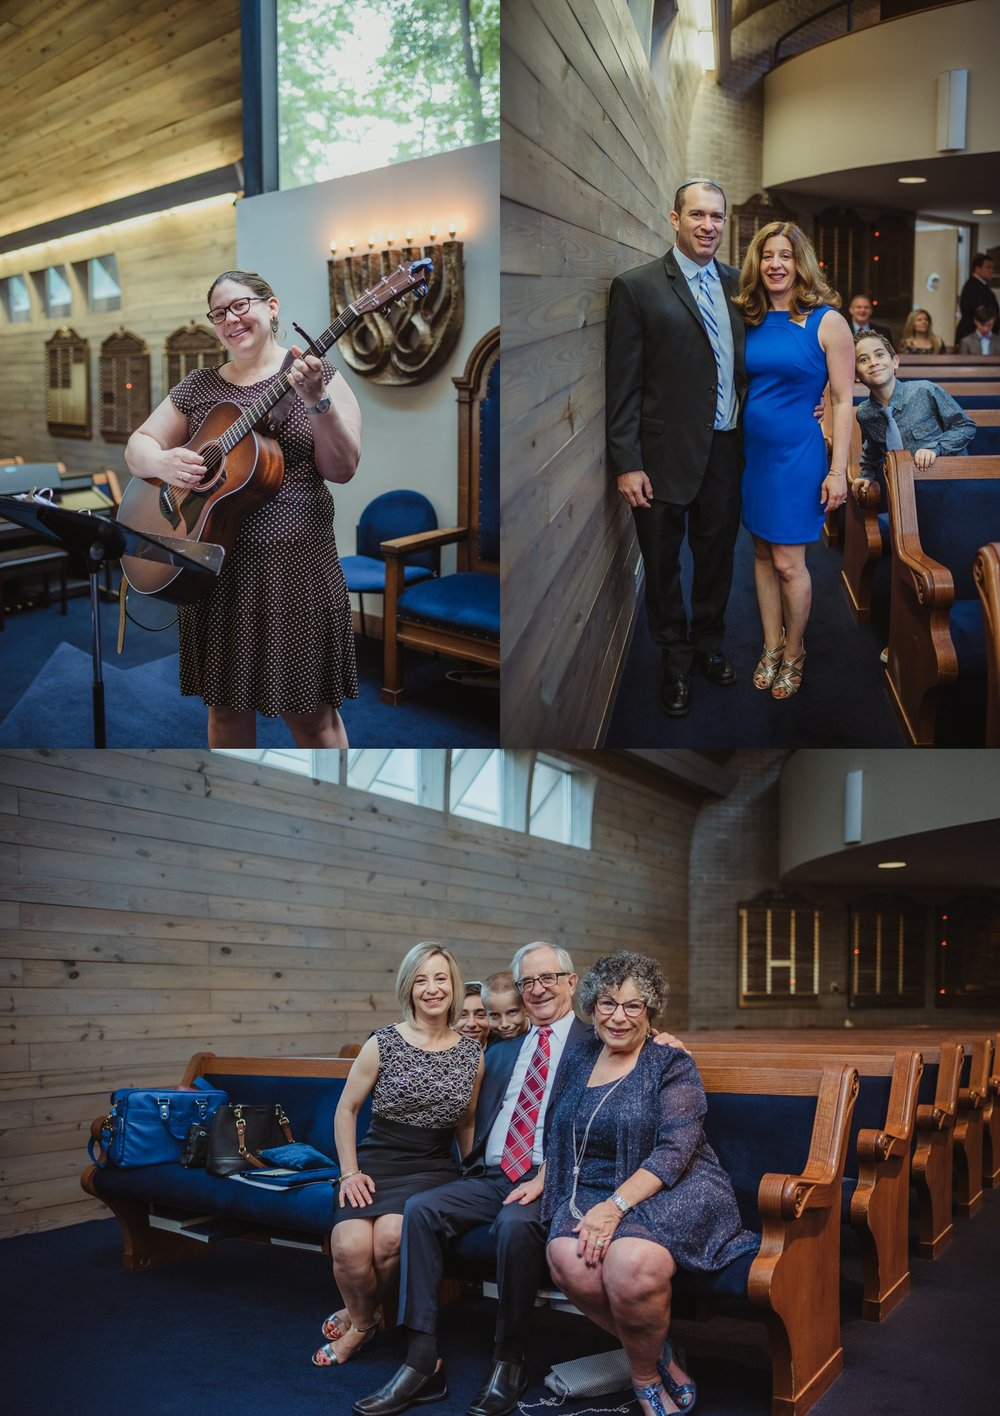 Family poses for Rose Trail Images by the pews, and Rabbi Citrin plays the guitar, before the mitzvah ceremony at Temple Beth Or in Raleigh, North Carolina.